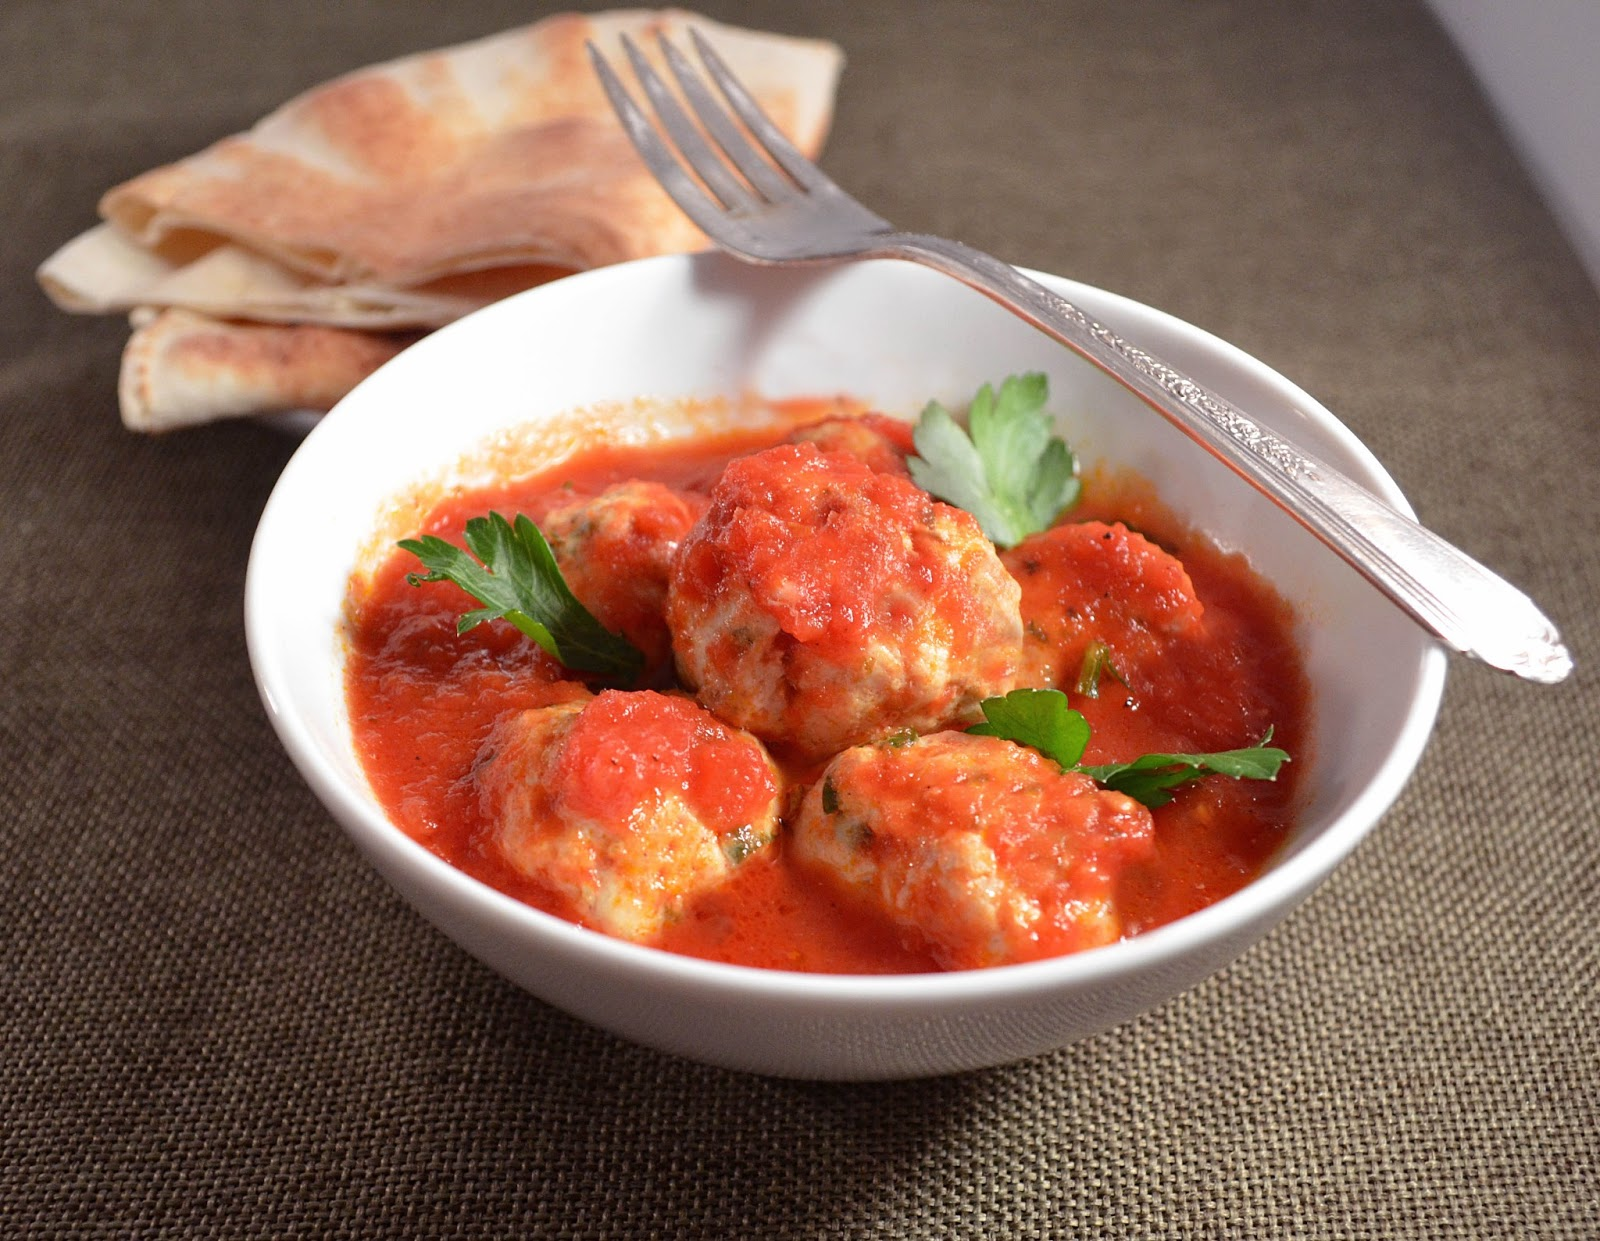 Jilly Inspired Middle Eastern Meatballs In A Tomato Sauce